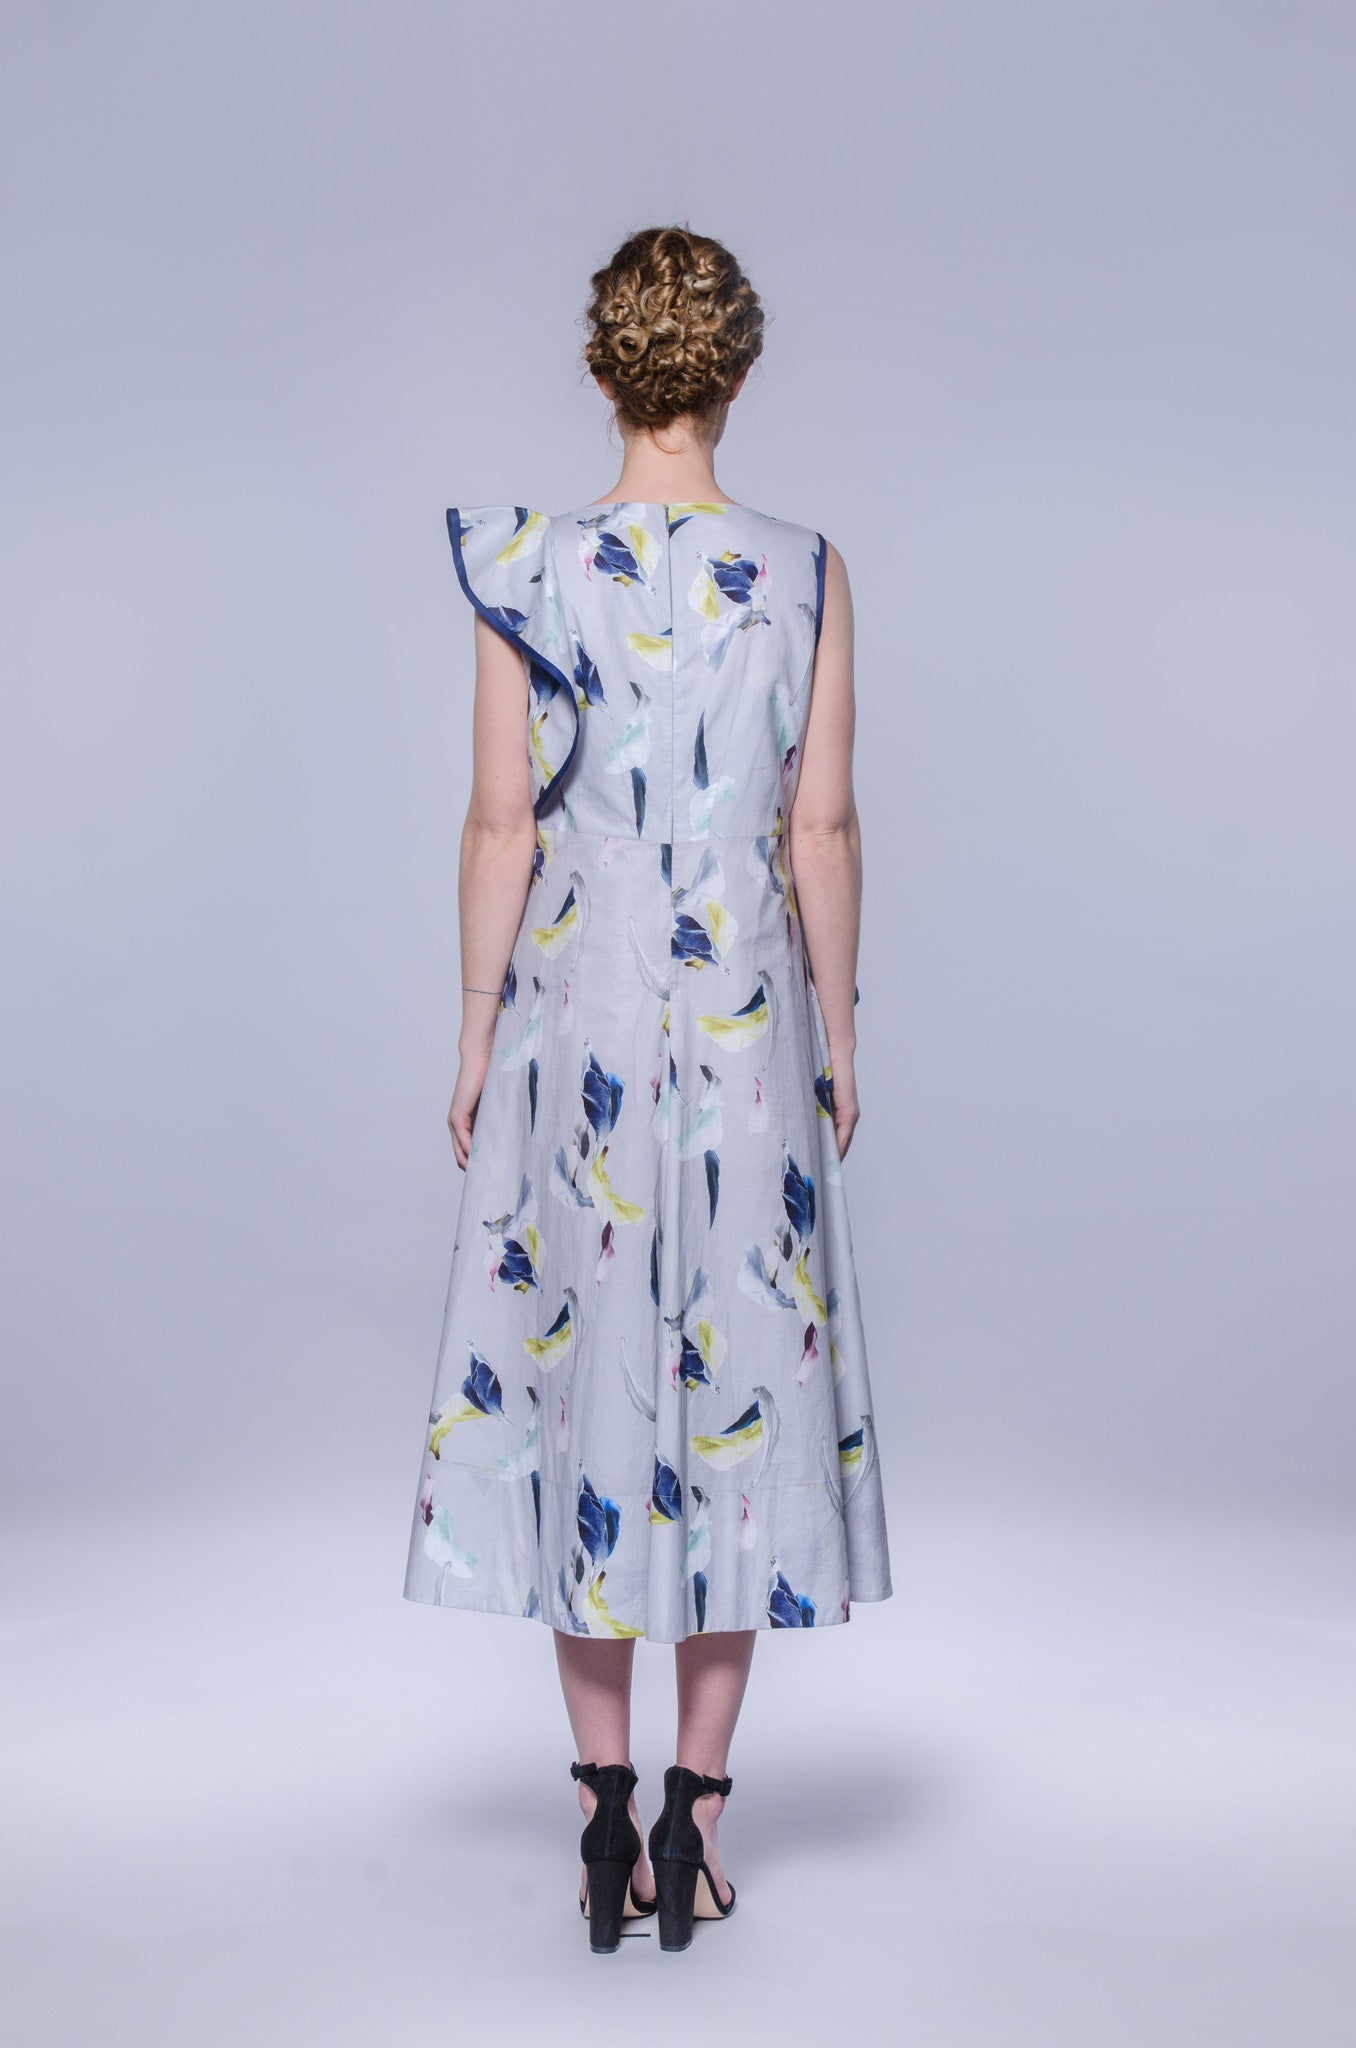 Maggy May Dress - Feather Print